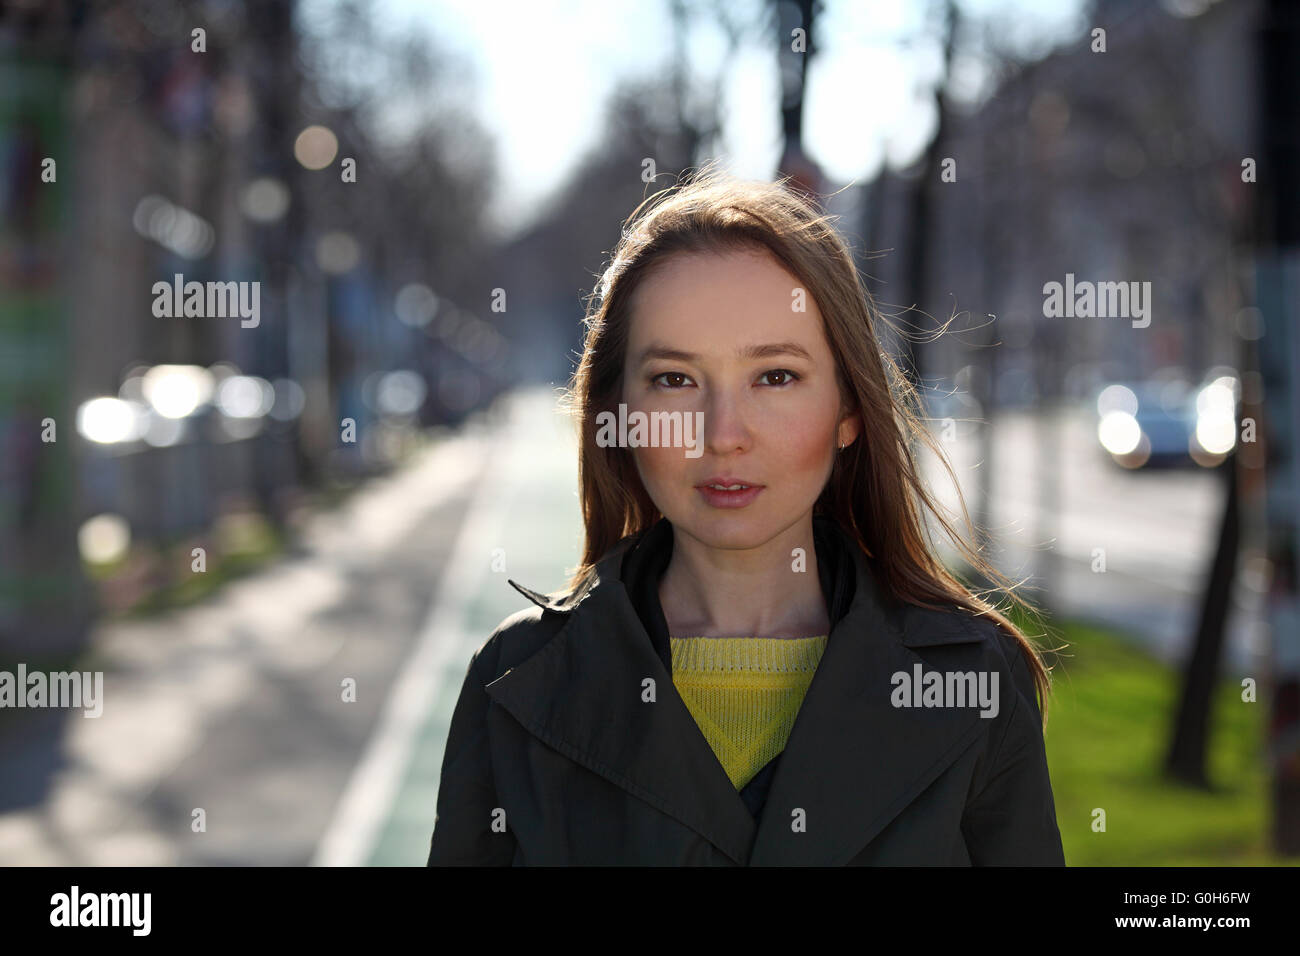 Beautiful Asian woman with yellow sweater and olive coat walking on the street - Stock Image